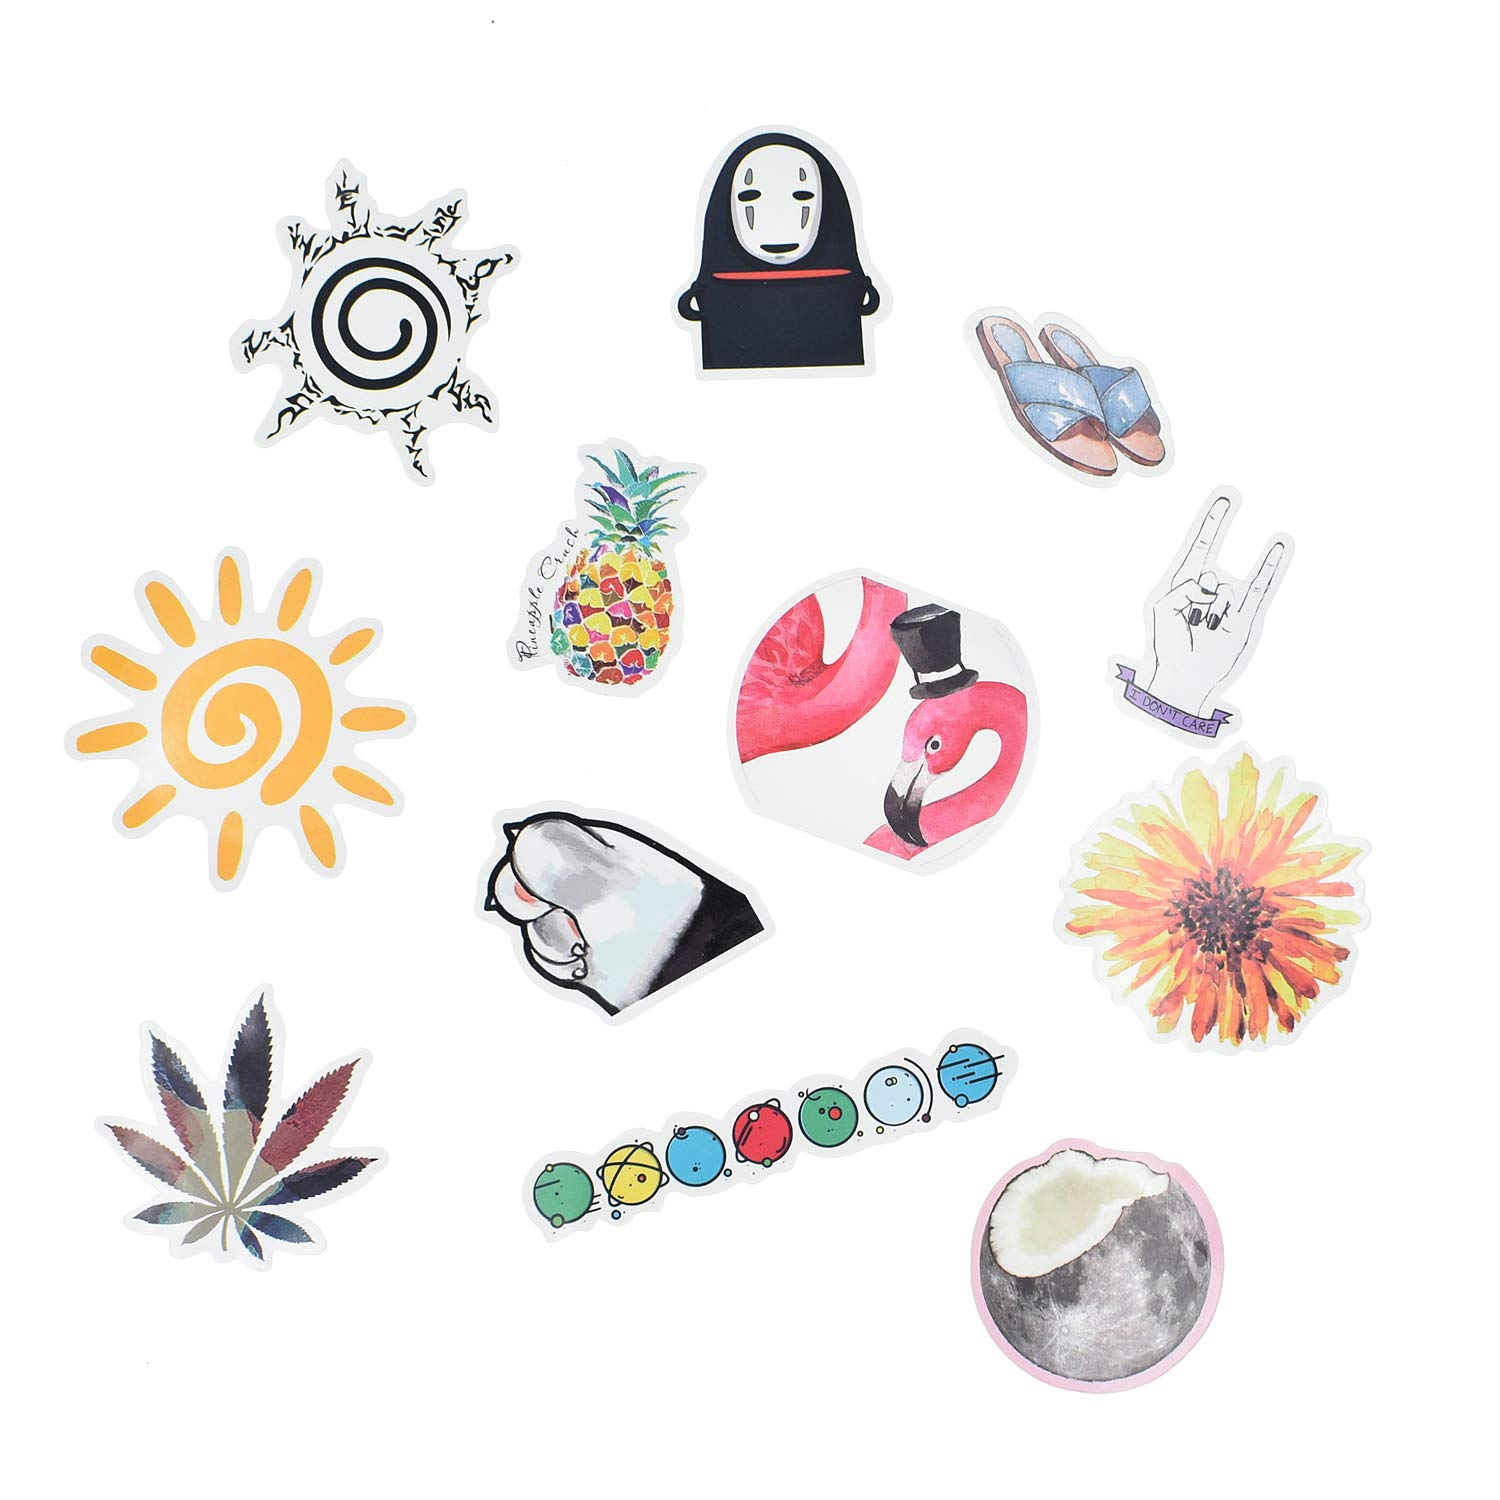 50 pcs Pack Girl Cute Cartoon Laptop Stickers Skateboard Motorcycle Phone Bicycle Luggage Guitar Bike Sticker Decal